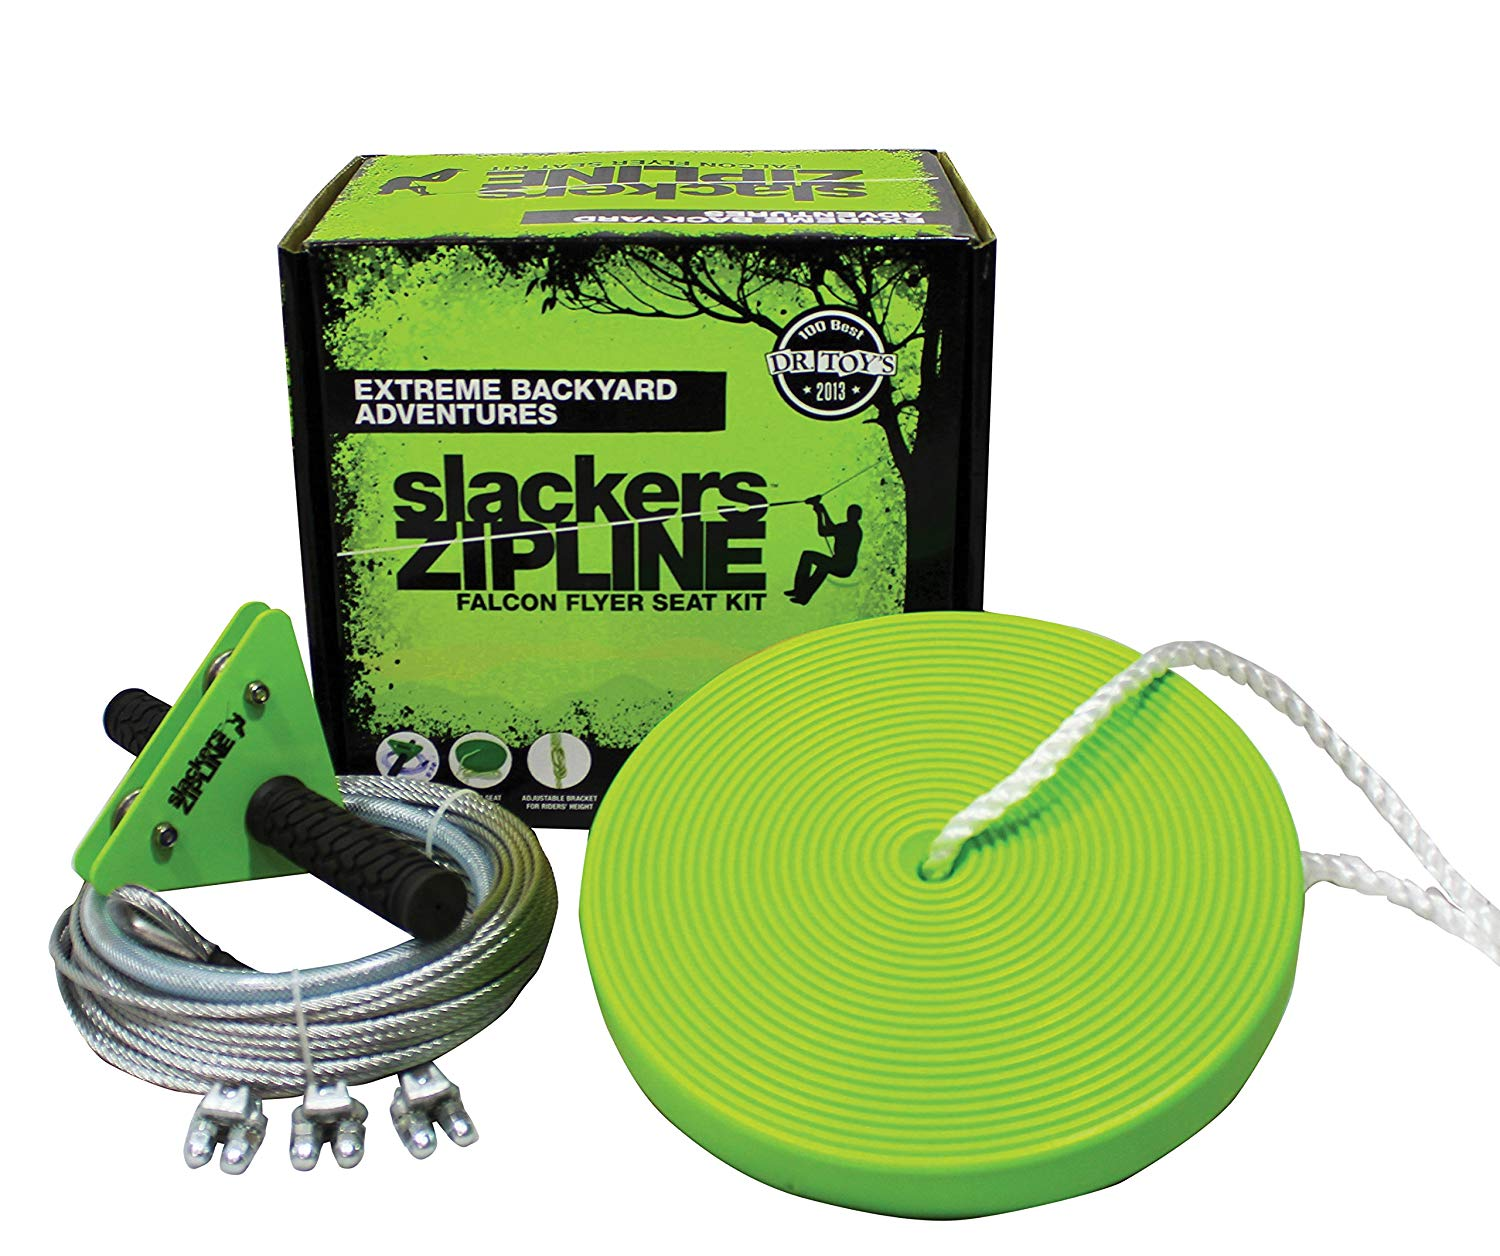 SLACKERS 40' ZIPLINE FALCON SERIES